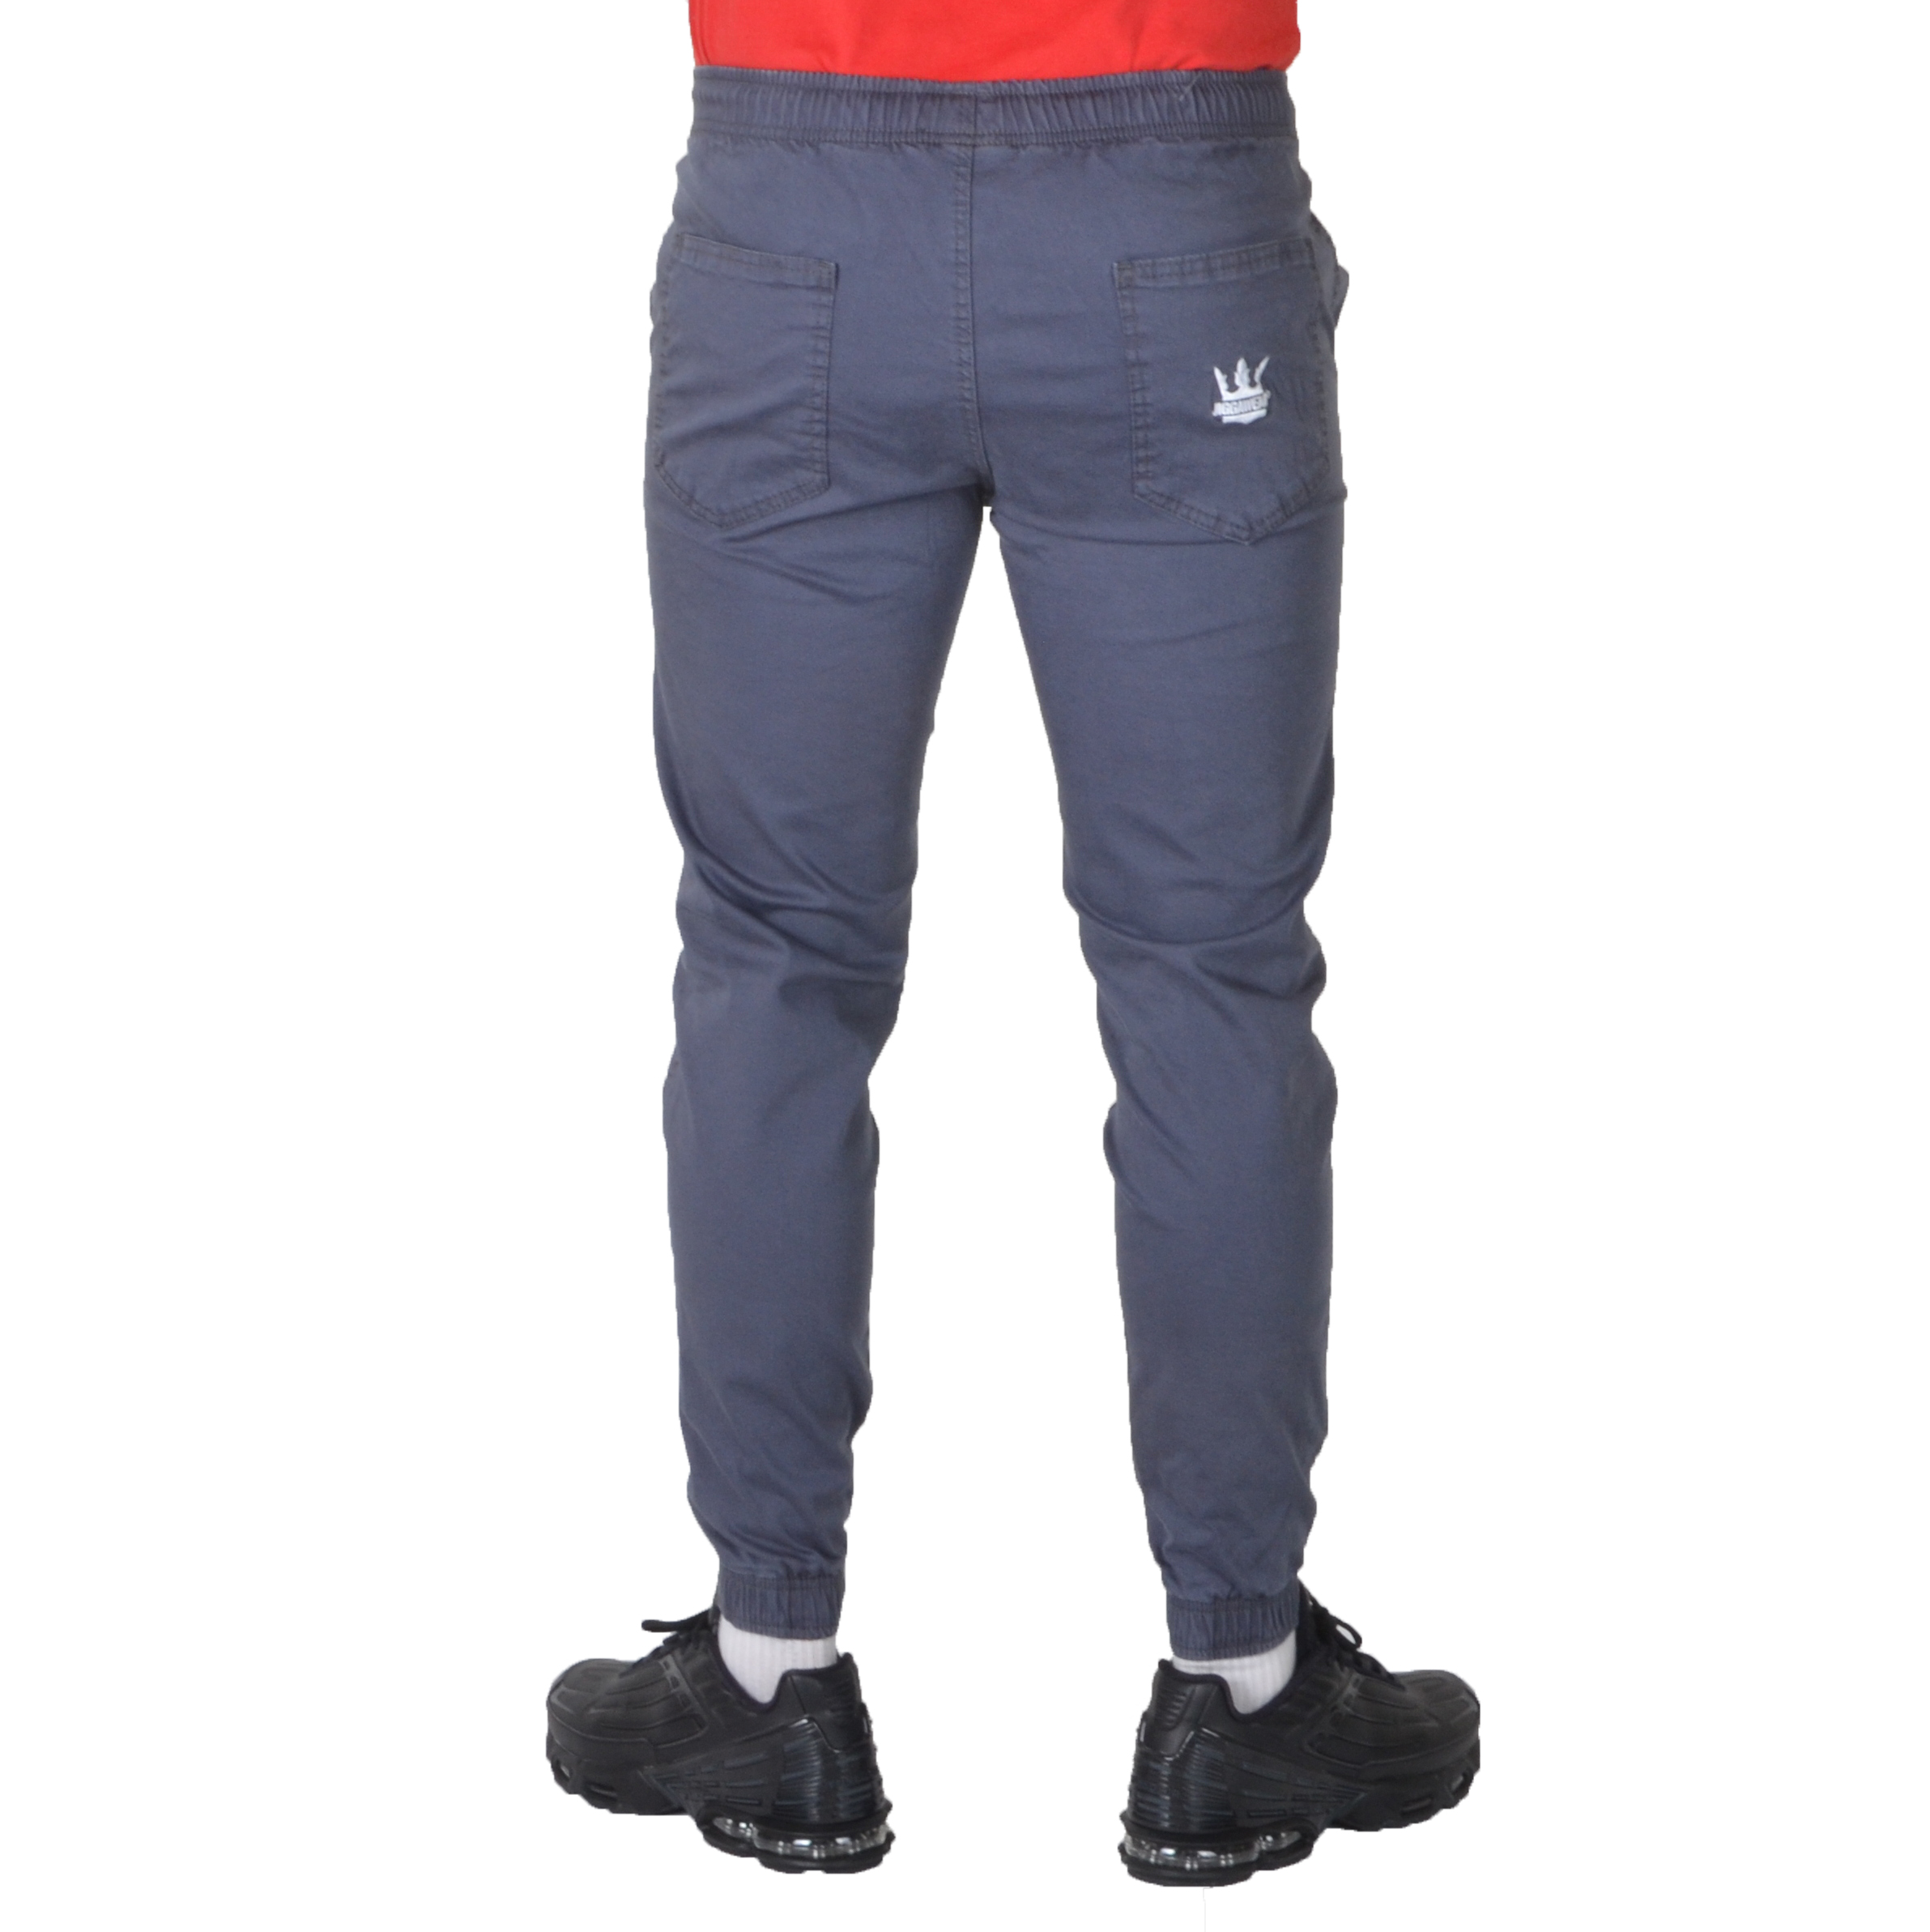 JIGGA WEAR SPODNIE JOGGER CHINO CROWN SZARE